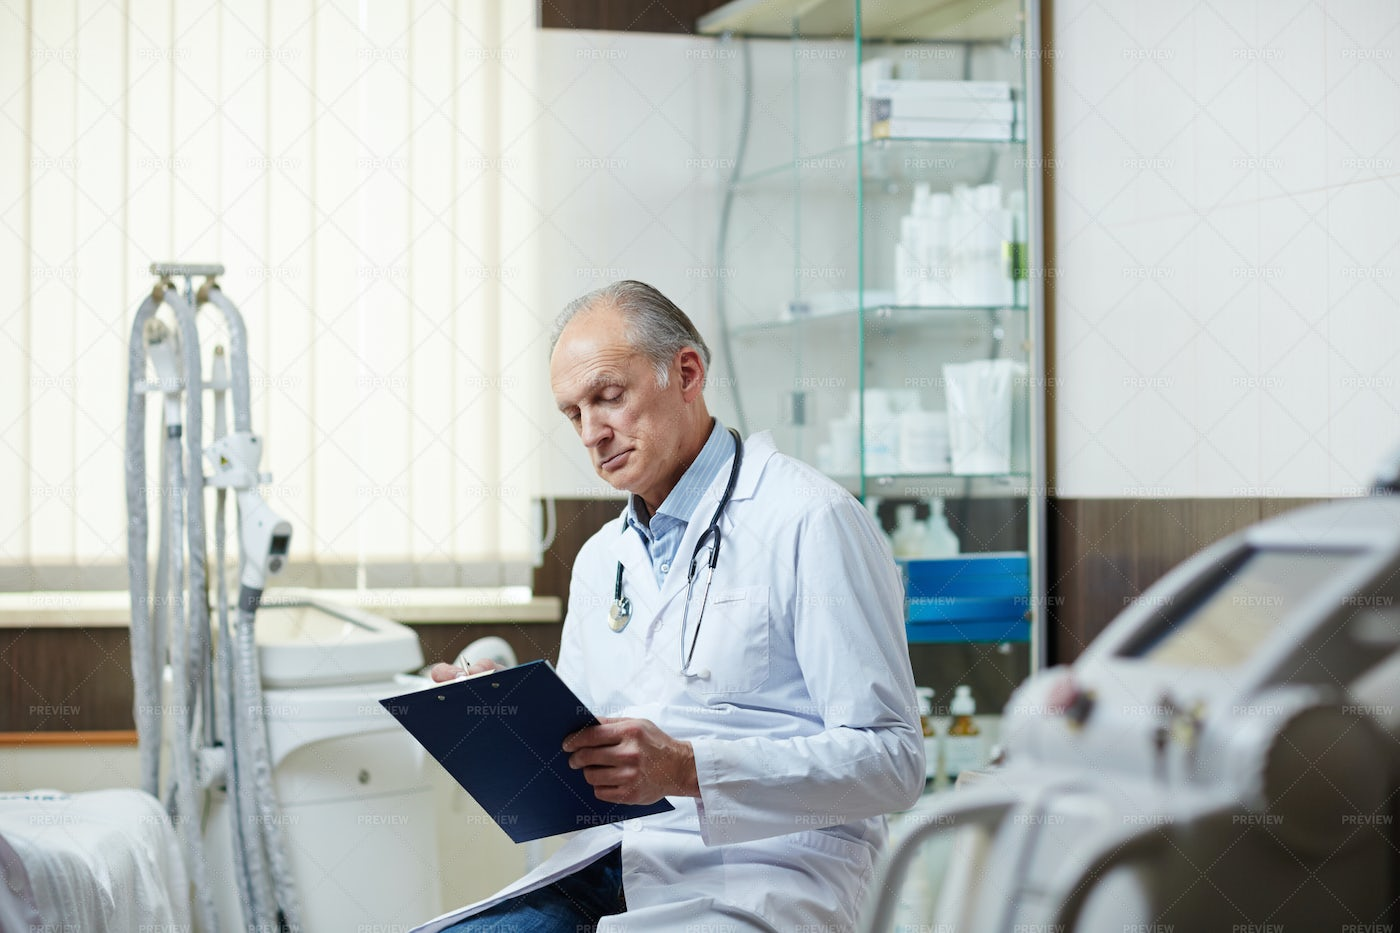 Filling In Medical Form: Stock Photos